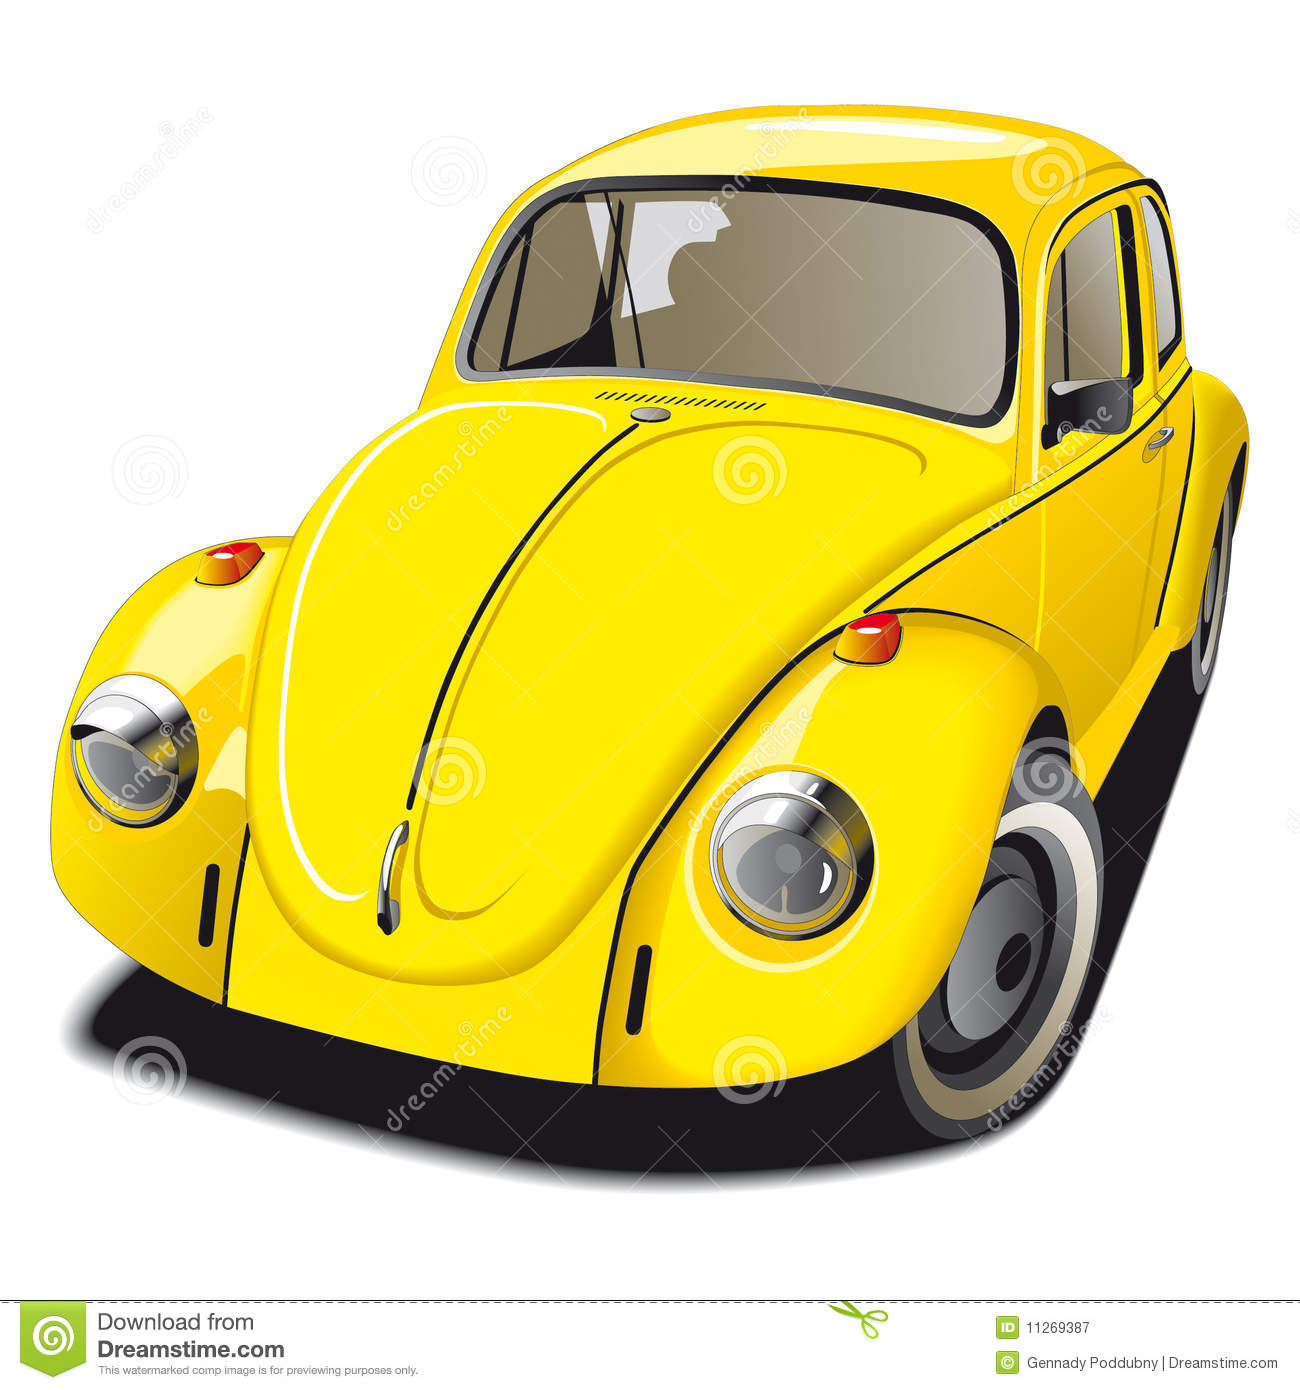 Old Fashioned Yellow Car Stock Vector Illustration Of